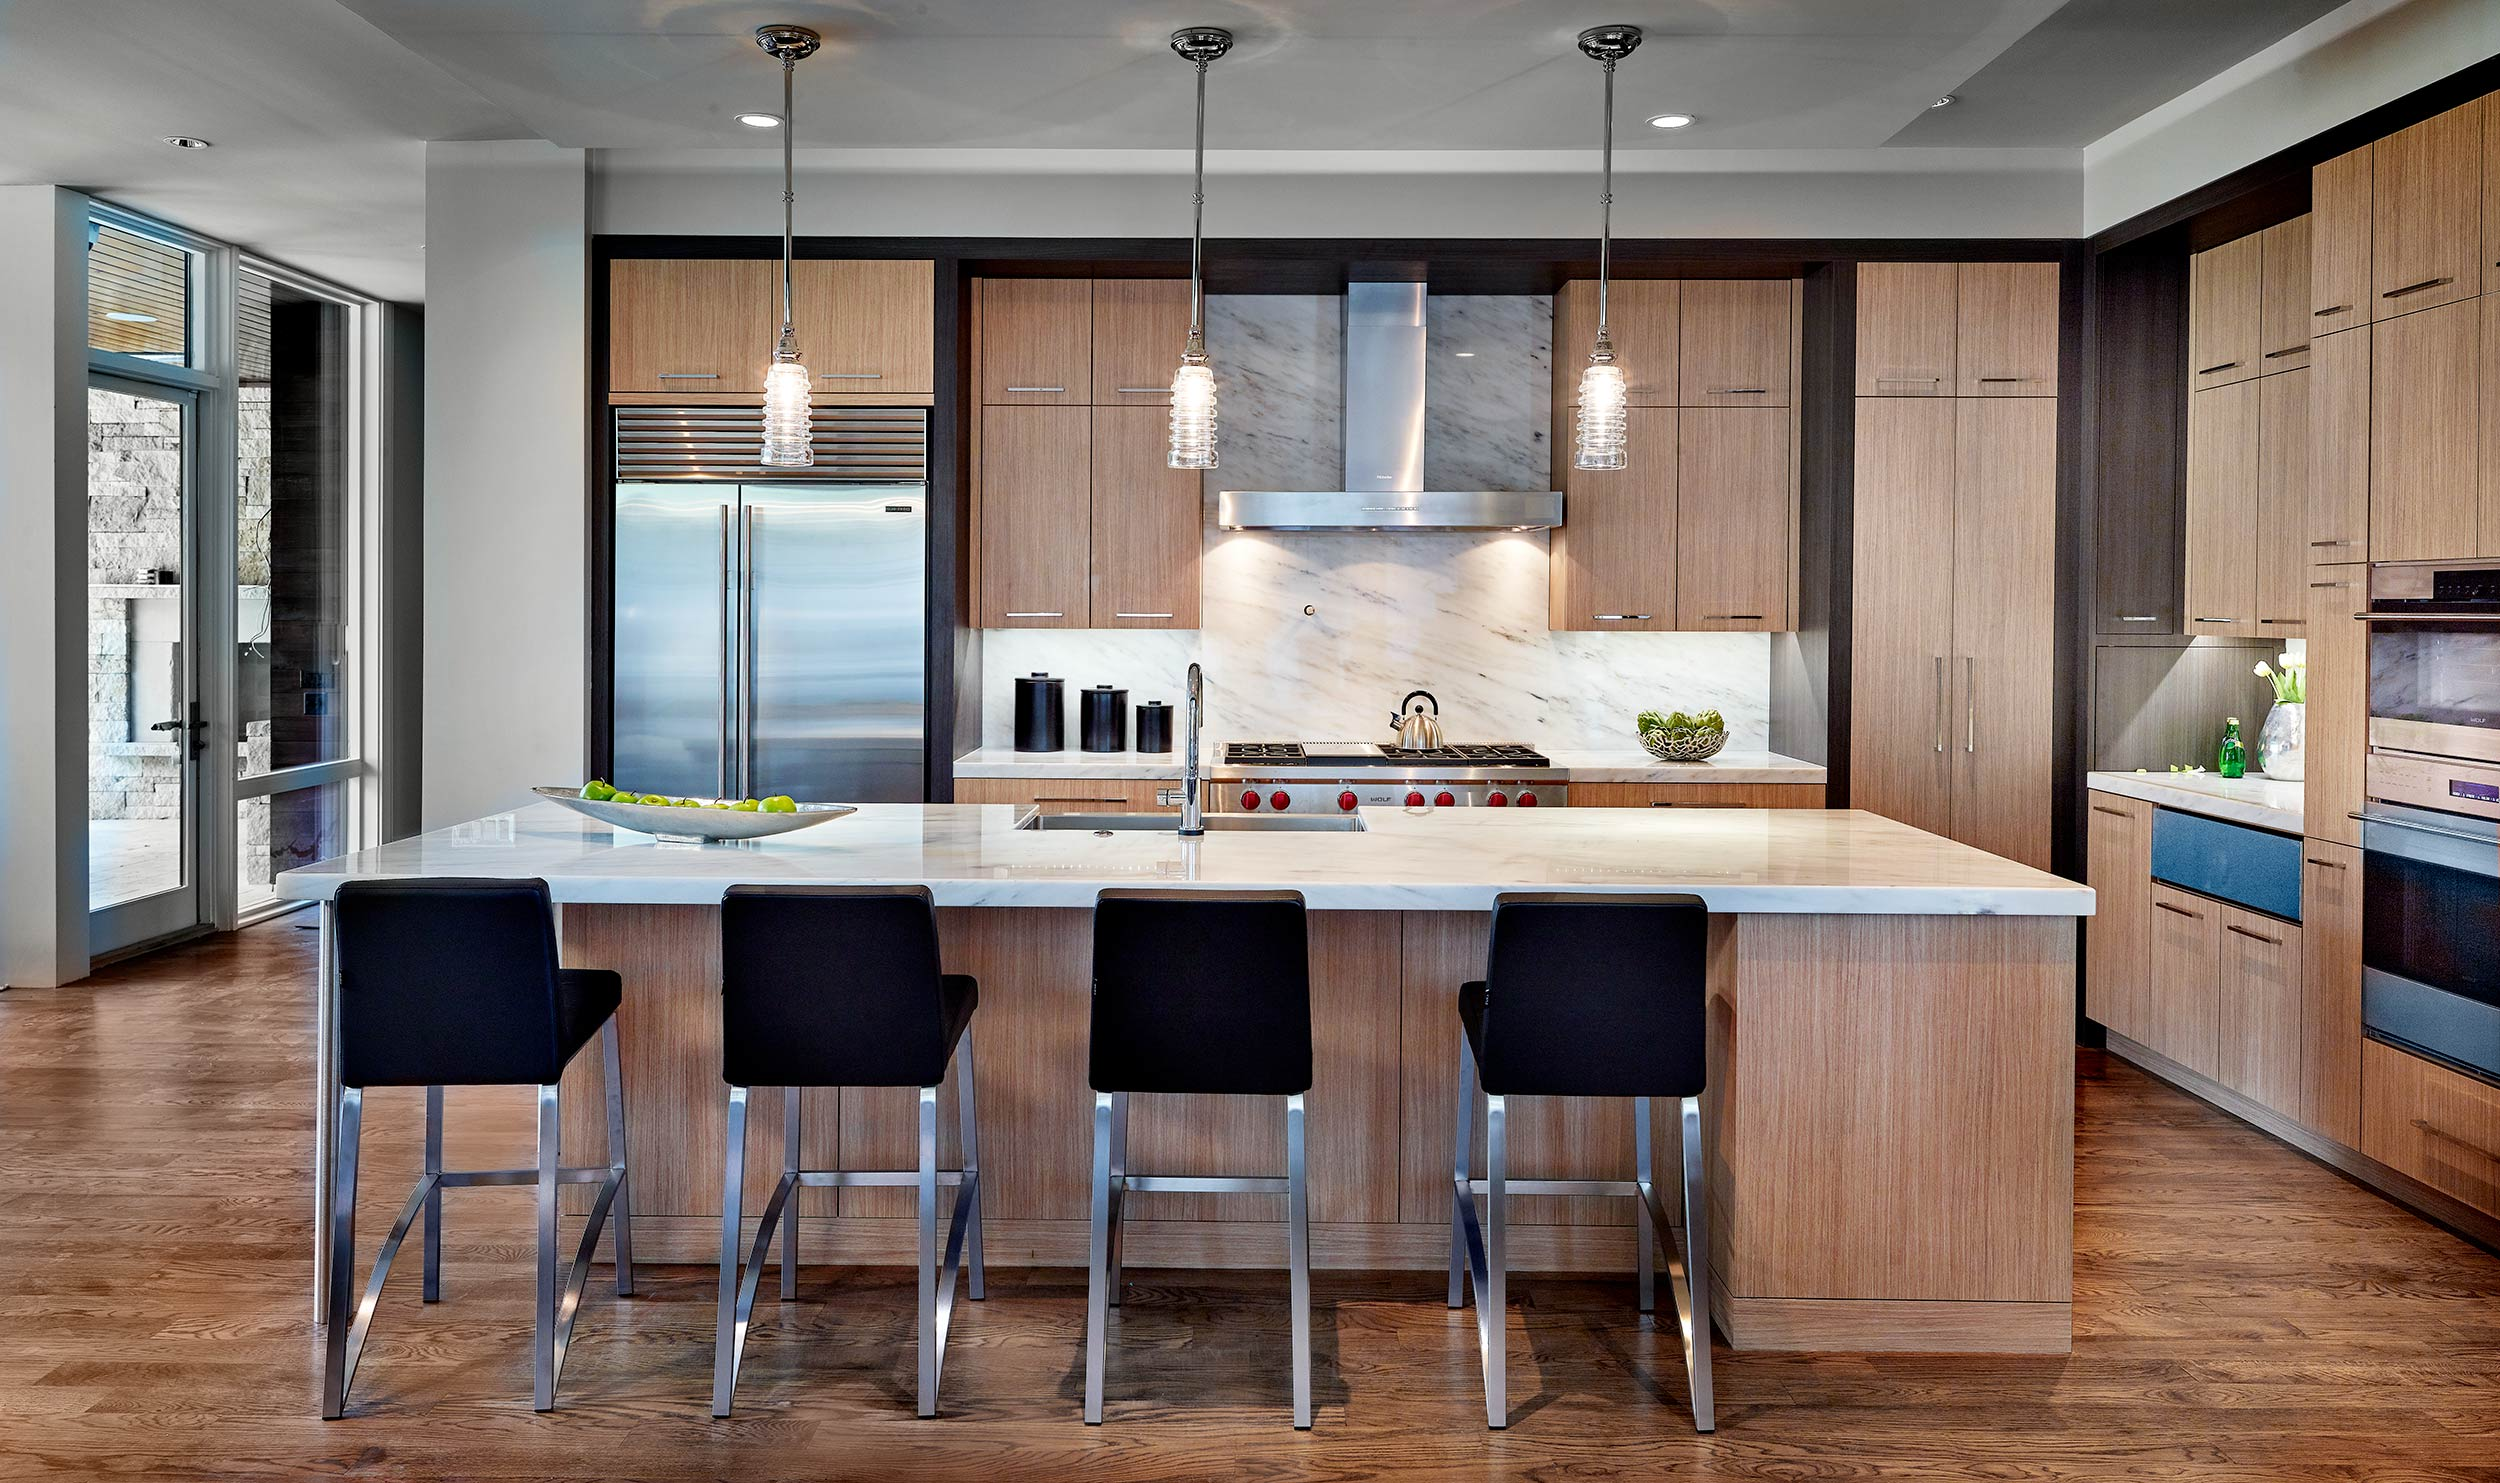 modern kitchens |  Dallas Design Group | interior designs | open concept kitchens